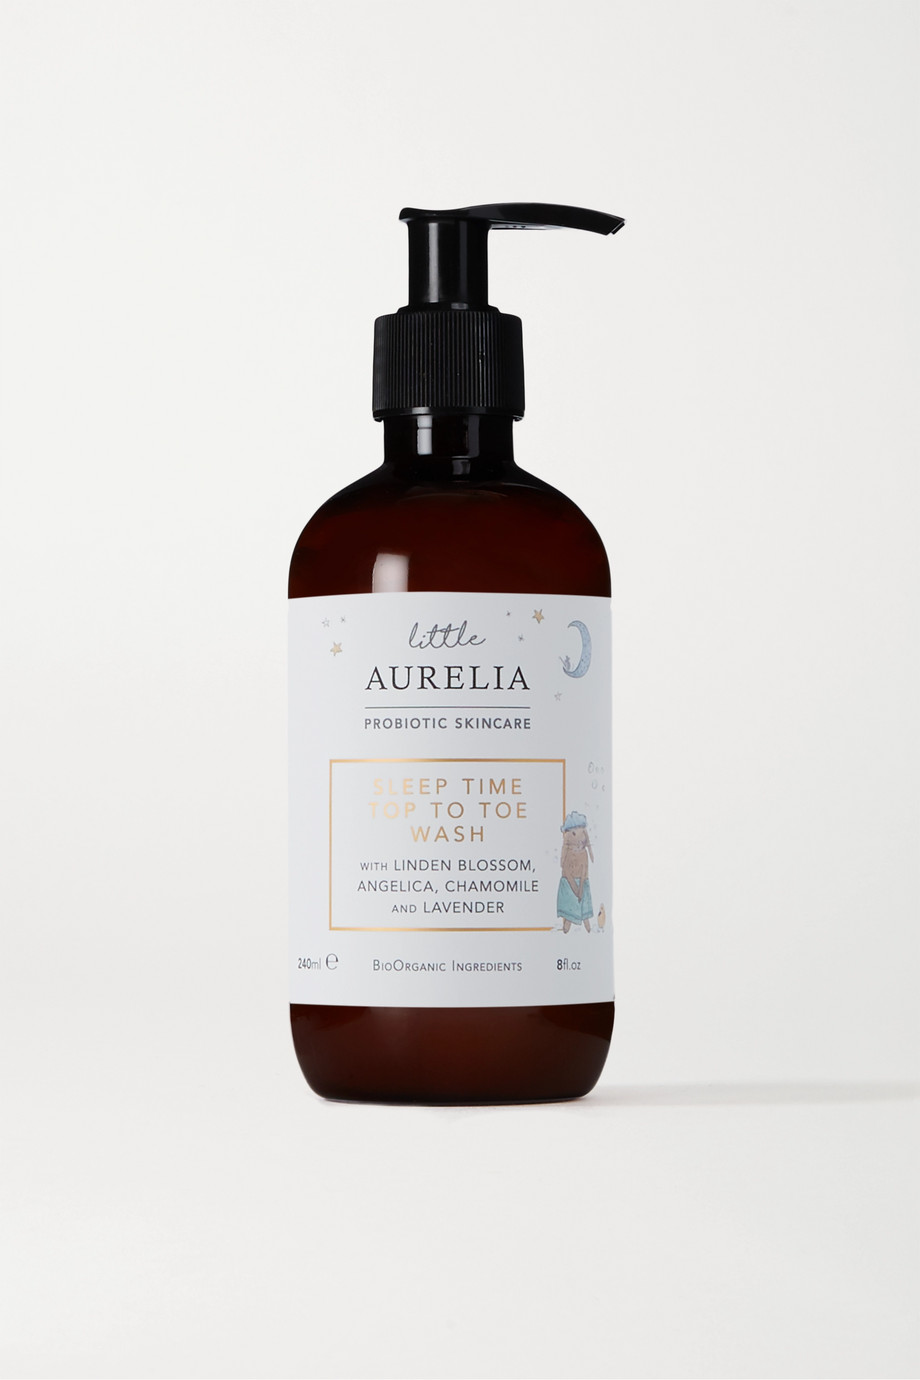 Aurelia Probiotic Skincare Little Aurelia Sleep Time Top to Toe Wash, 240ml